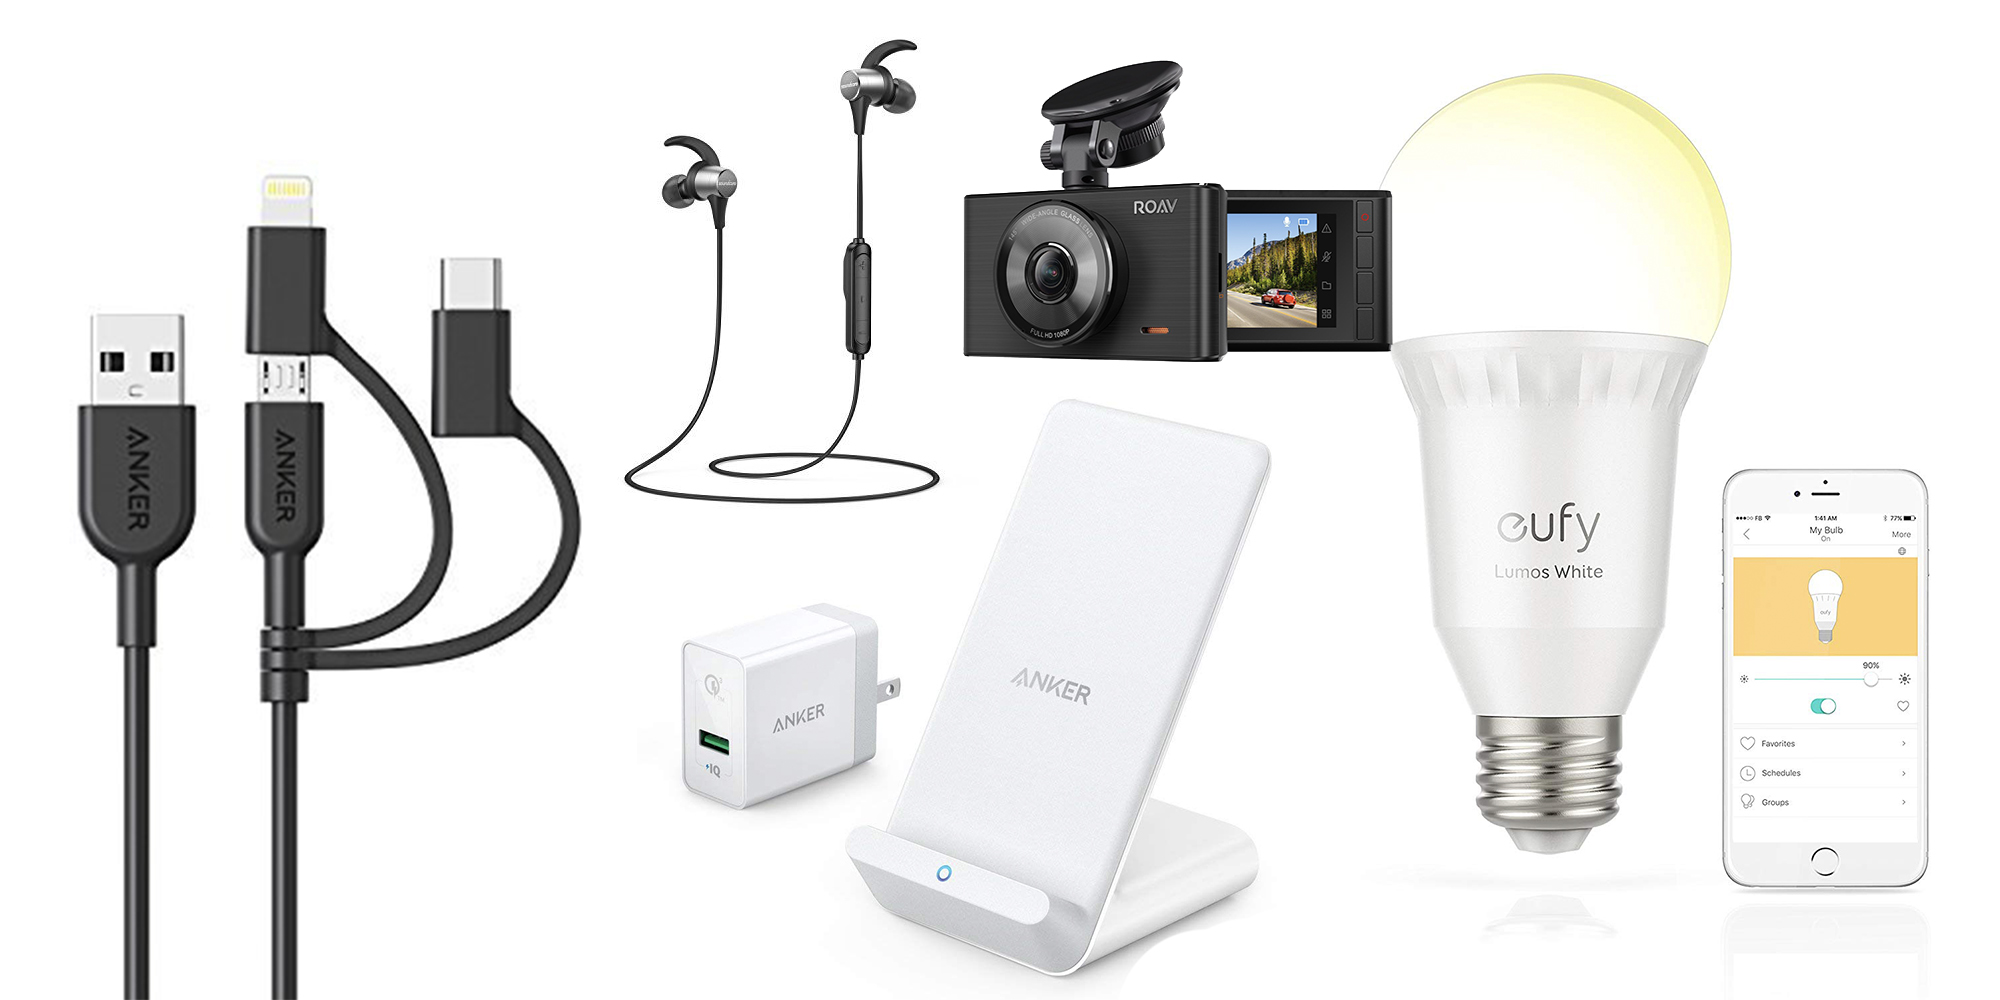 Anker S Latest Amazon Sale Has Its New 3 In 1 Powerline